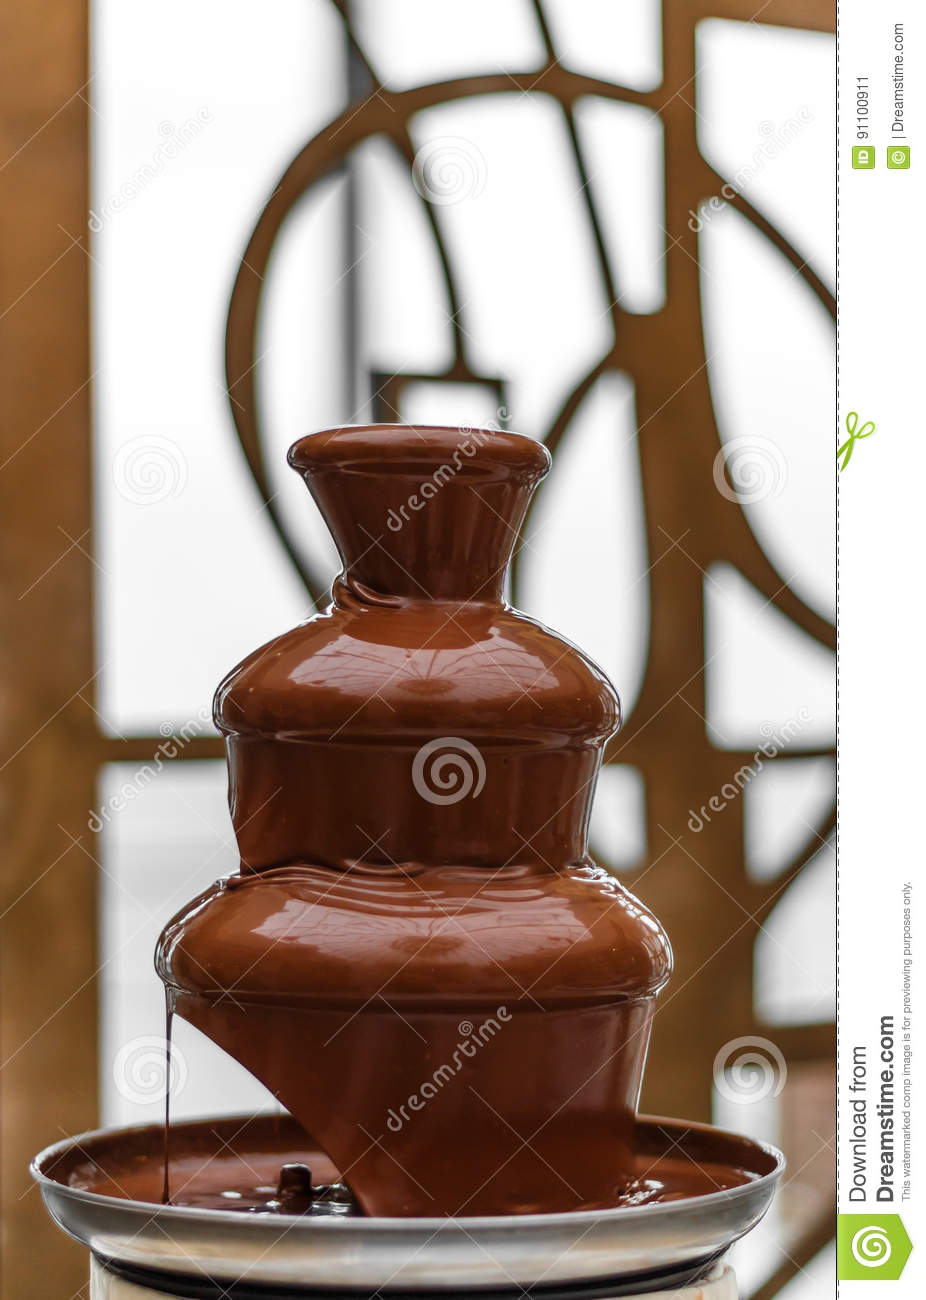 Amazing Chocolate Fountain Stock Image Image Of Event 91100911